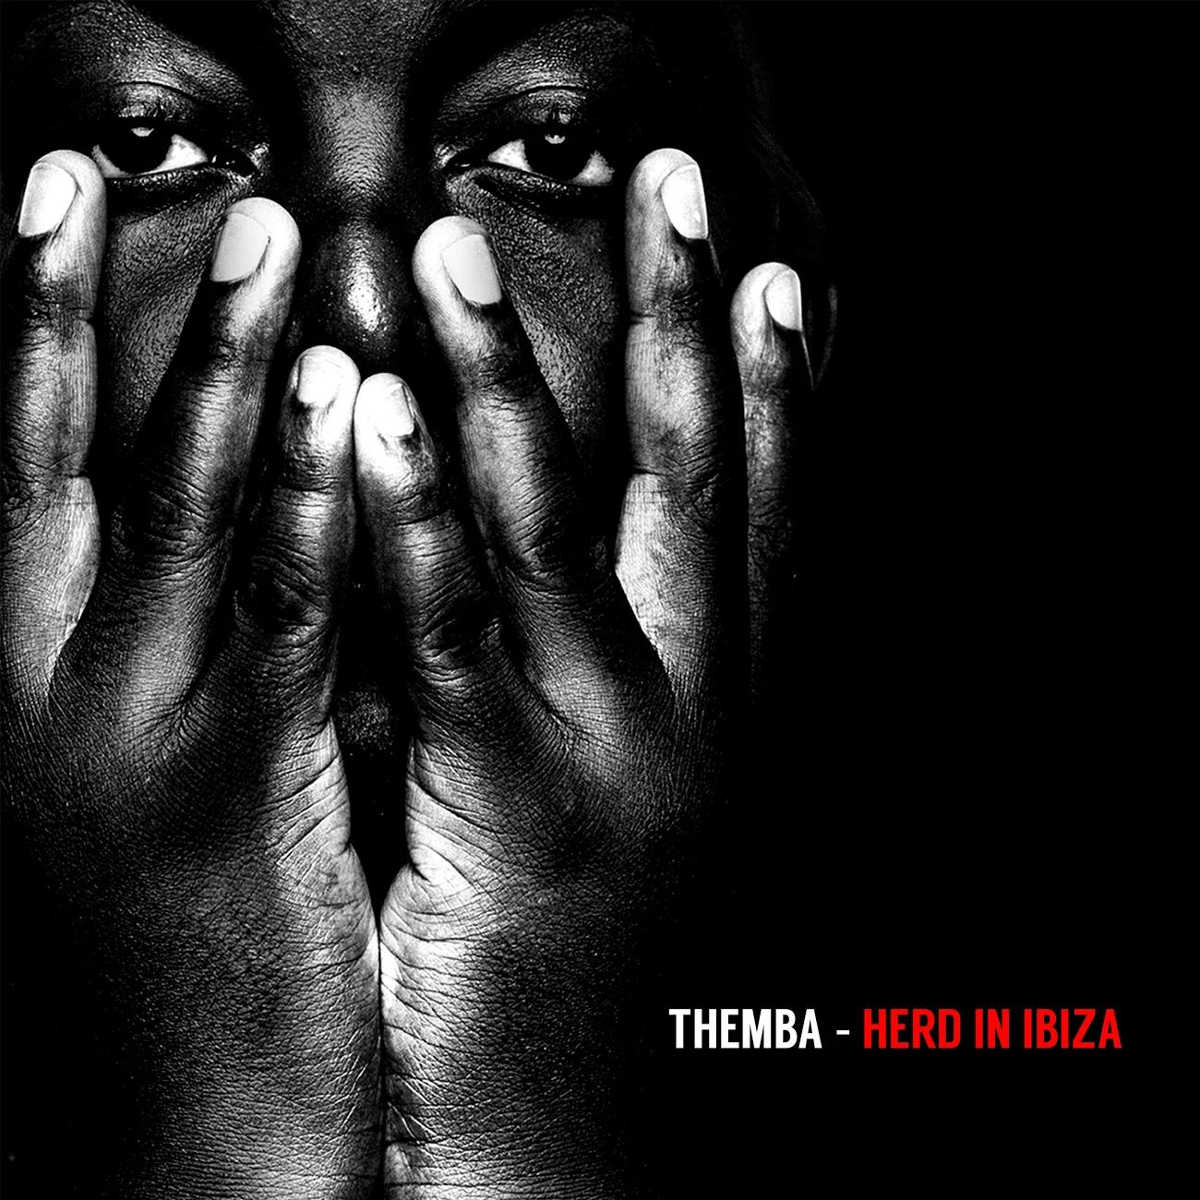 THEMBA - Herd in Ibiza Mix